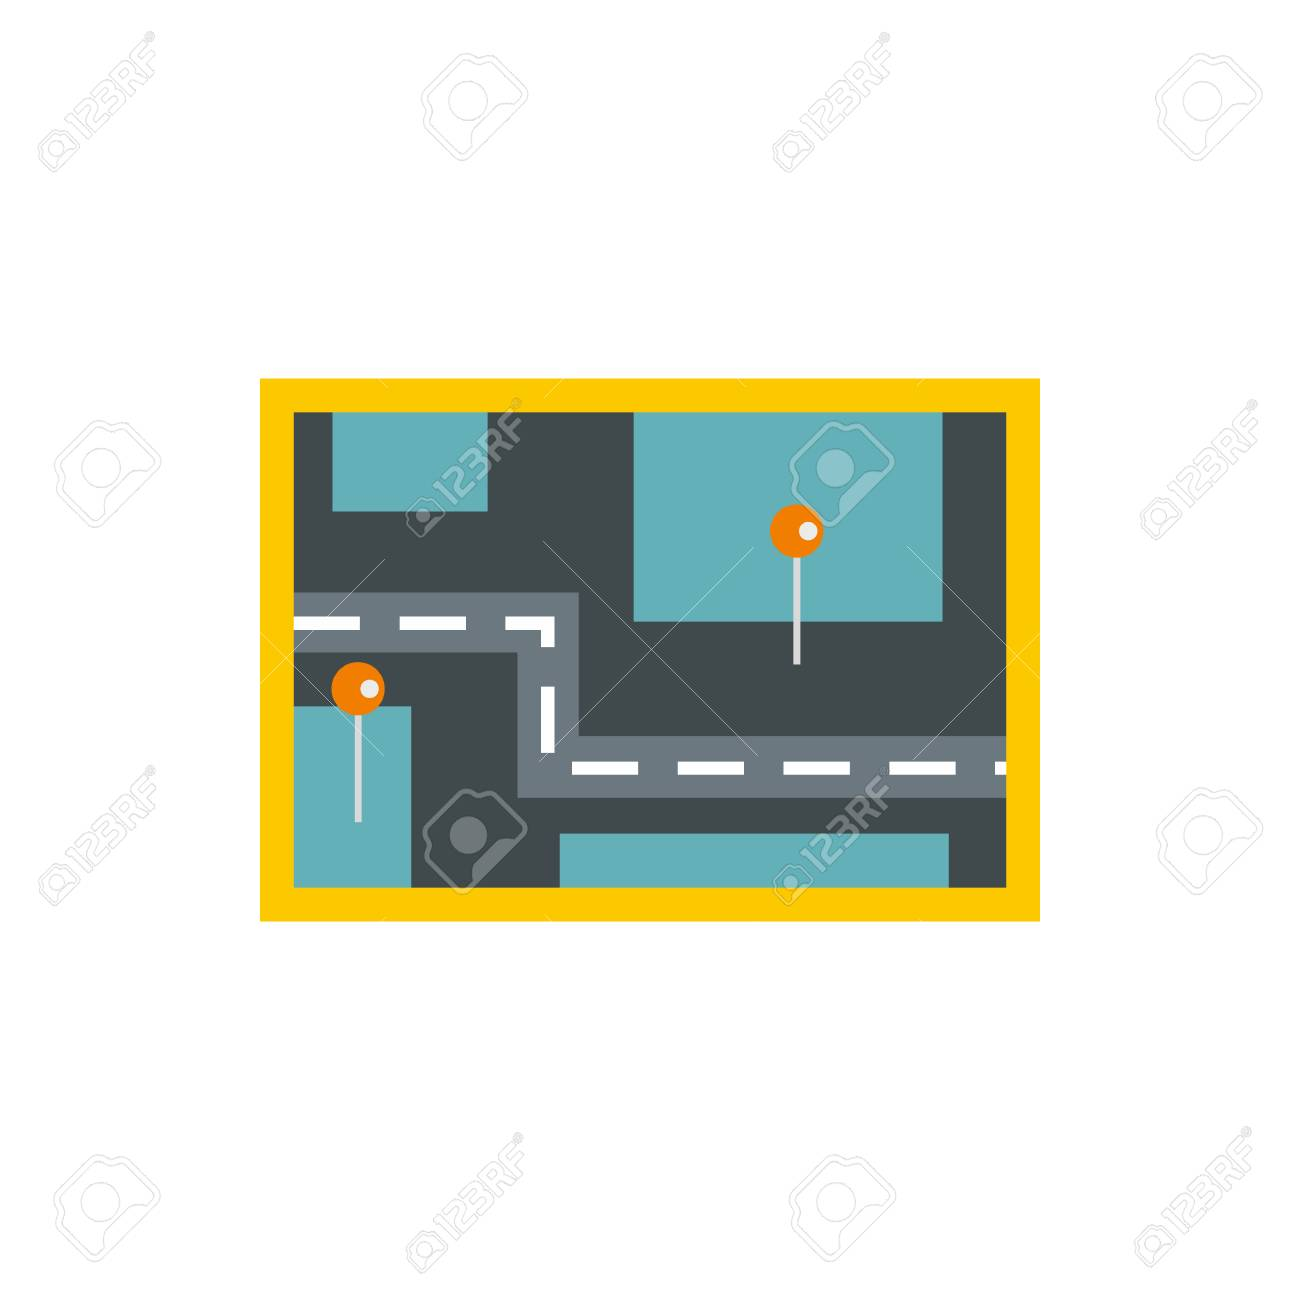 road map icon in flat style isolated on white background navigation